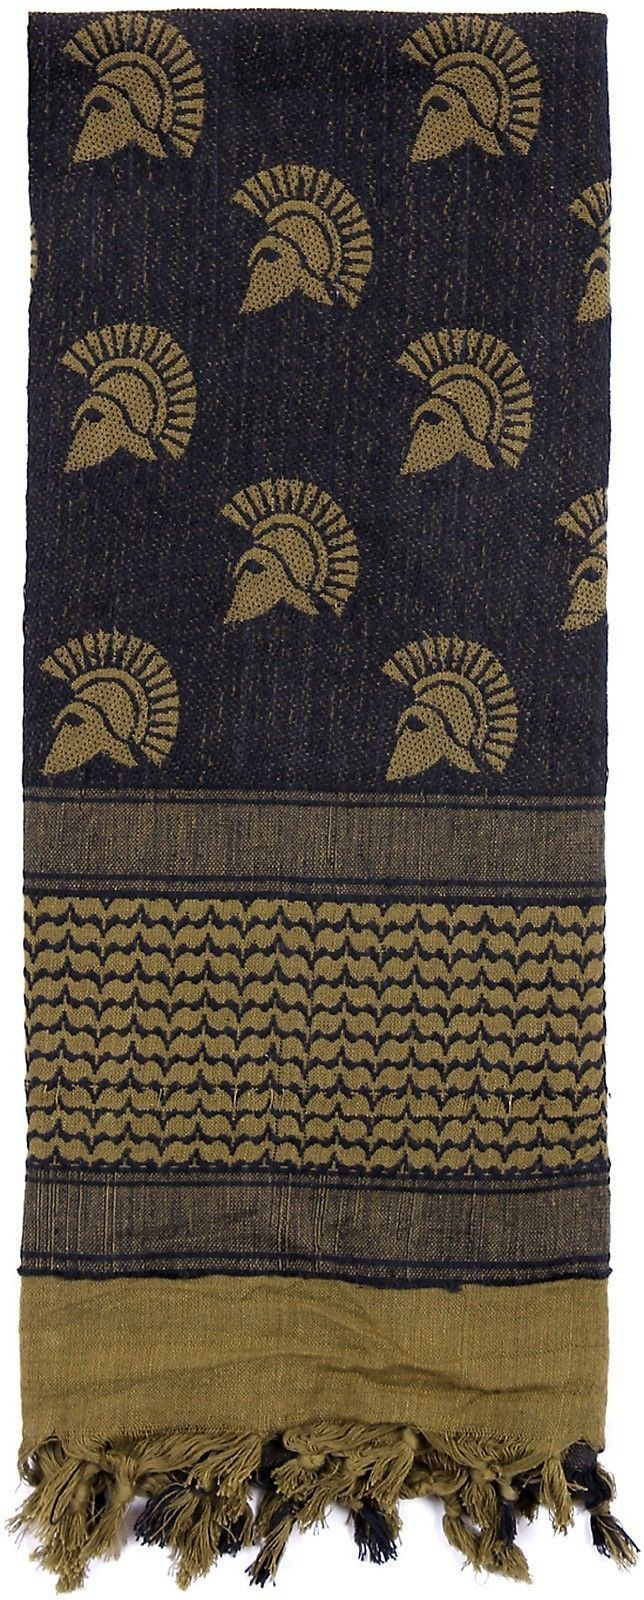 A new spin on a classic, Rothco's new Shemagh scarves feature Military, Spartan and Skull patterns. Shemaghs are a traditional desert head-wear that are design